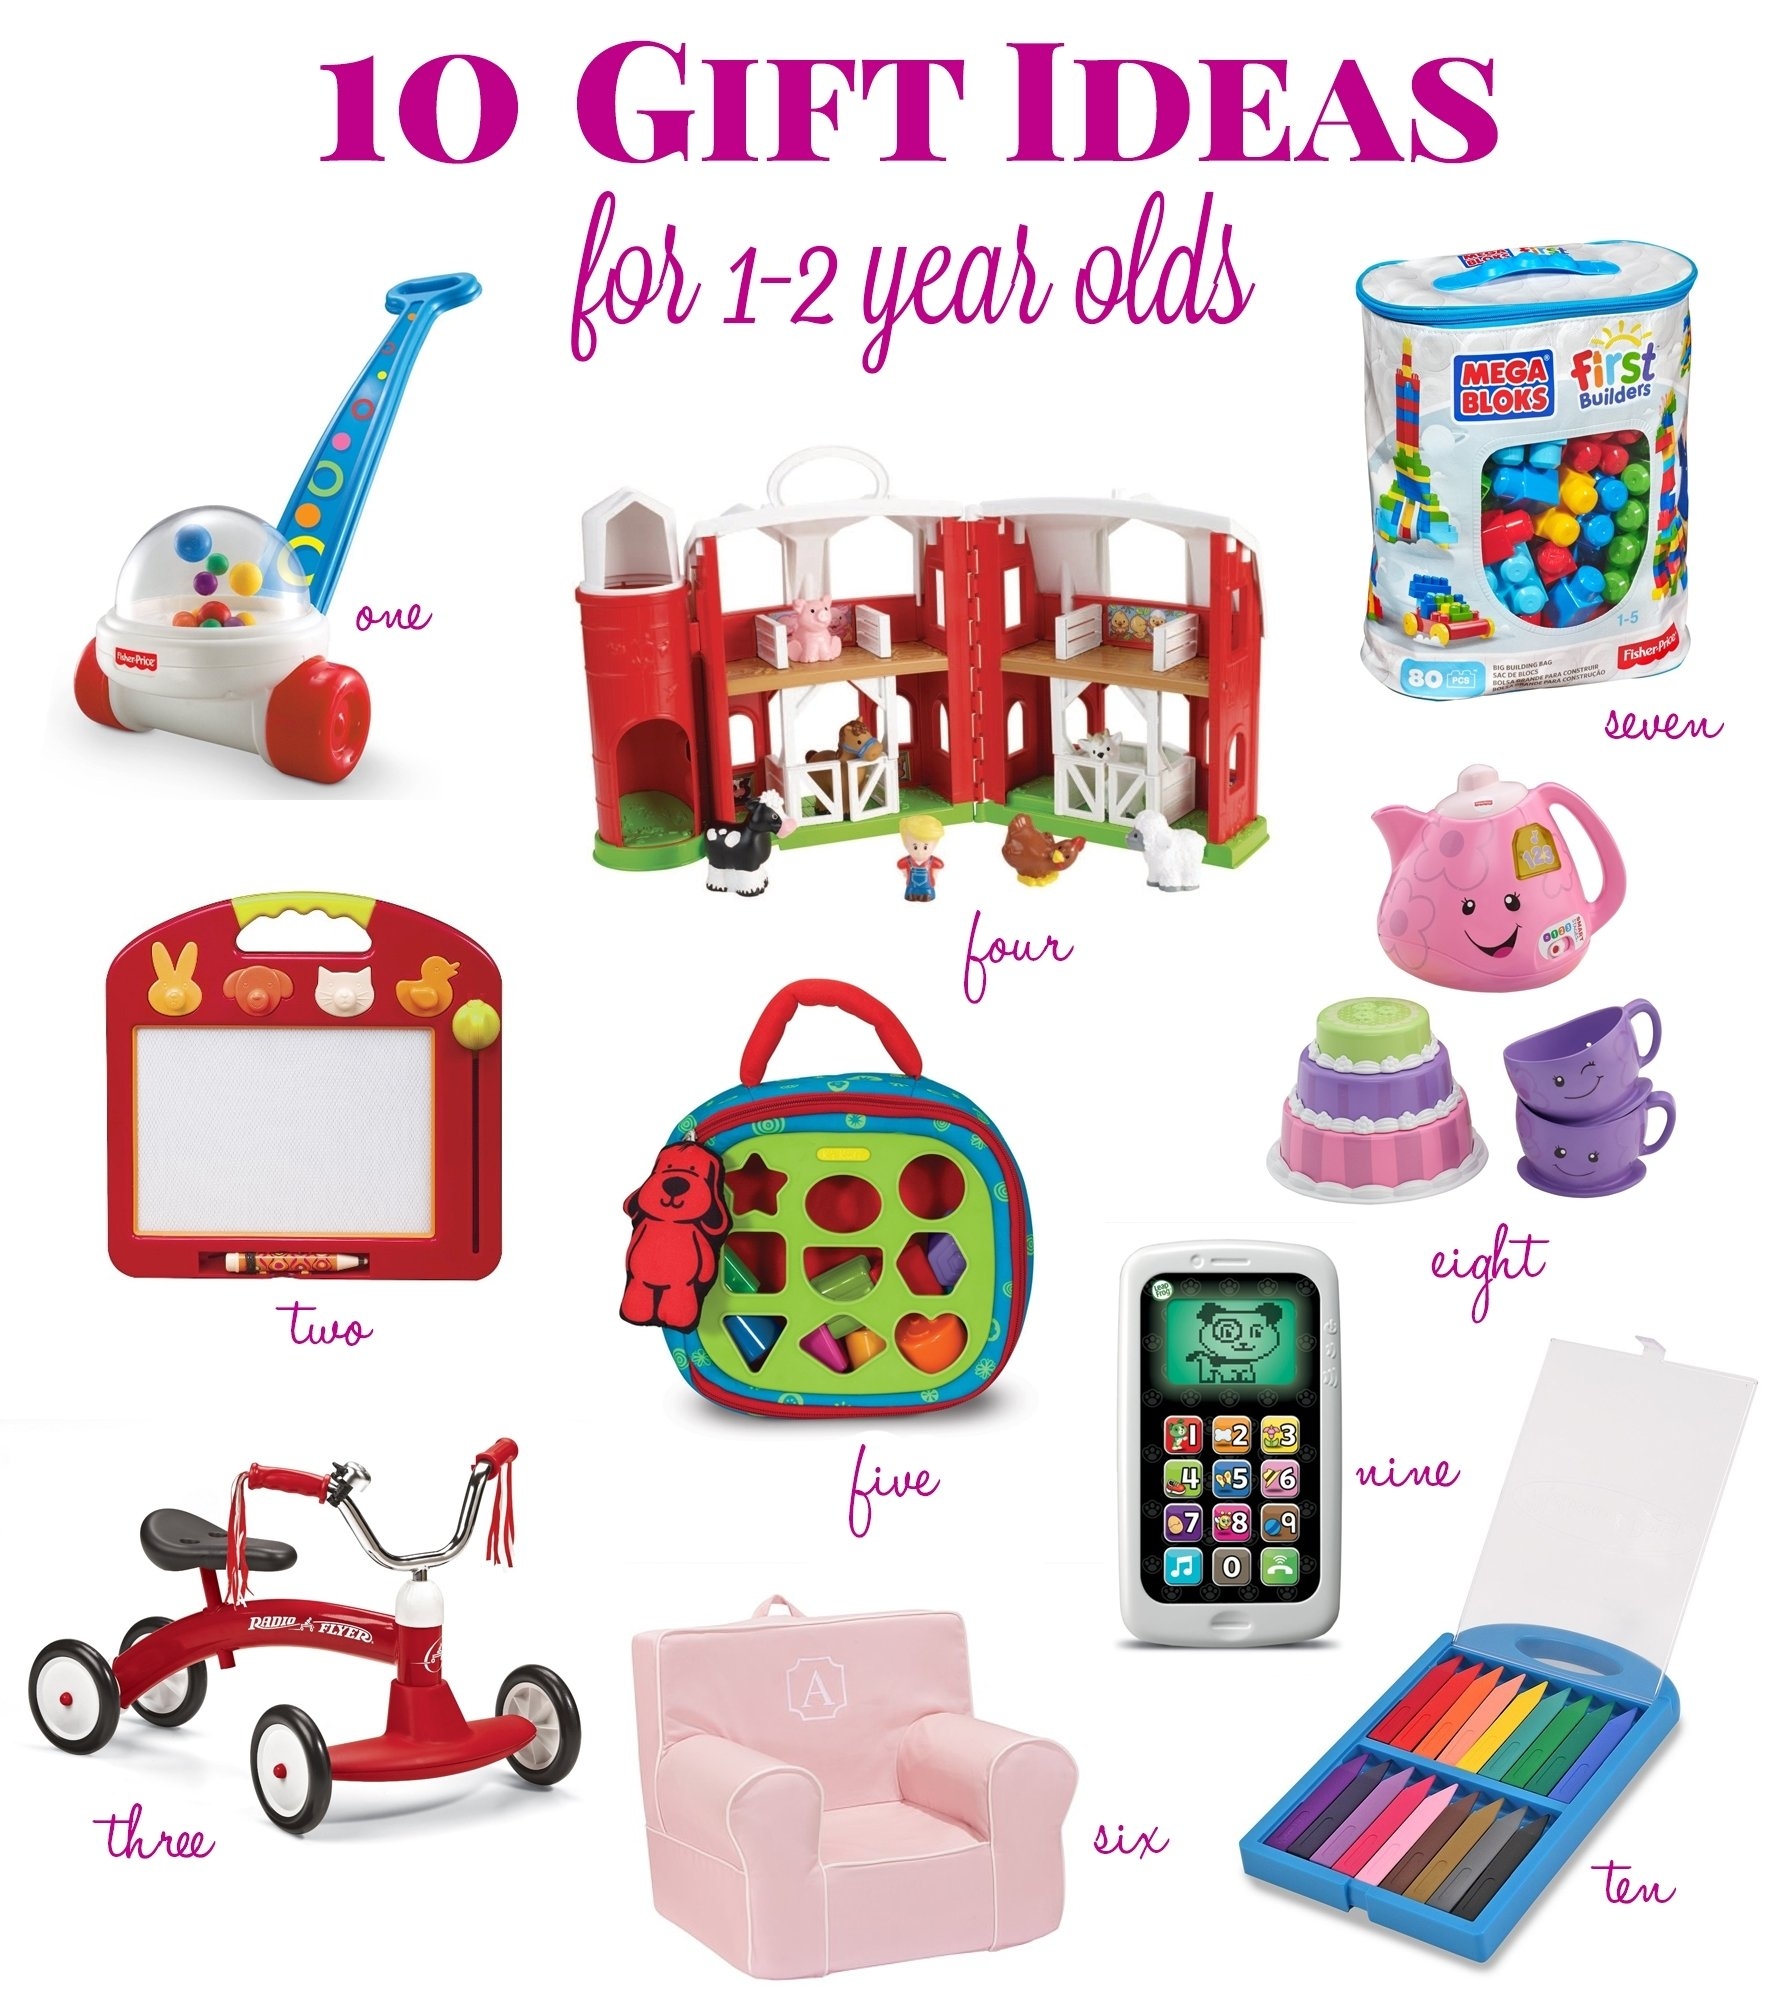 10 Stunning Gift Ideas 1 Year Old gift ideas for a 1 year old lifes tidbits 11 2020